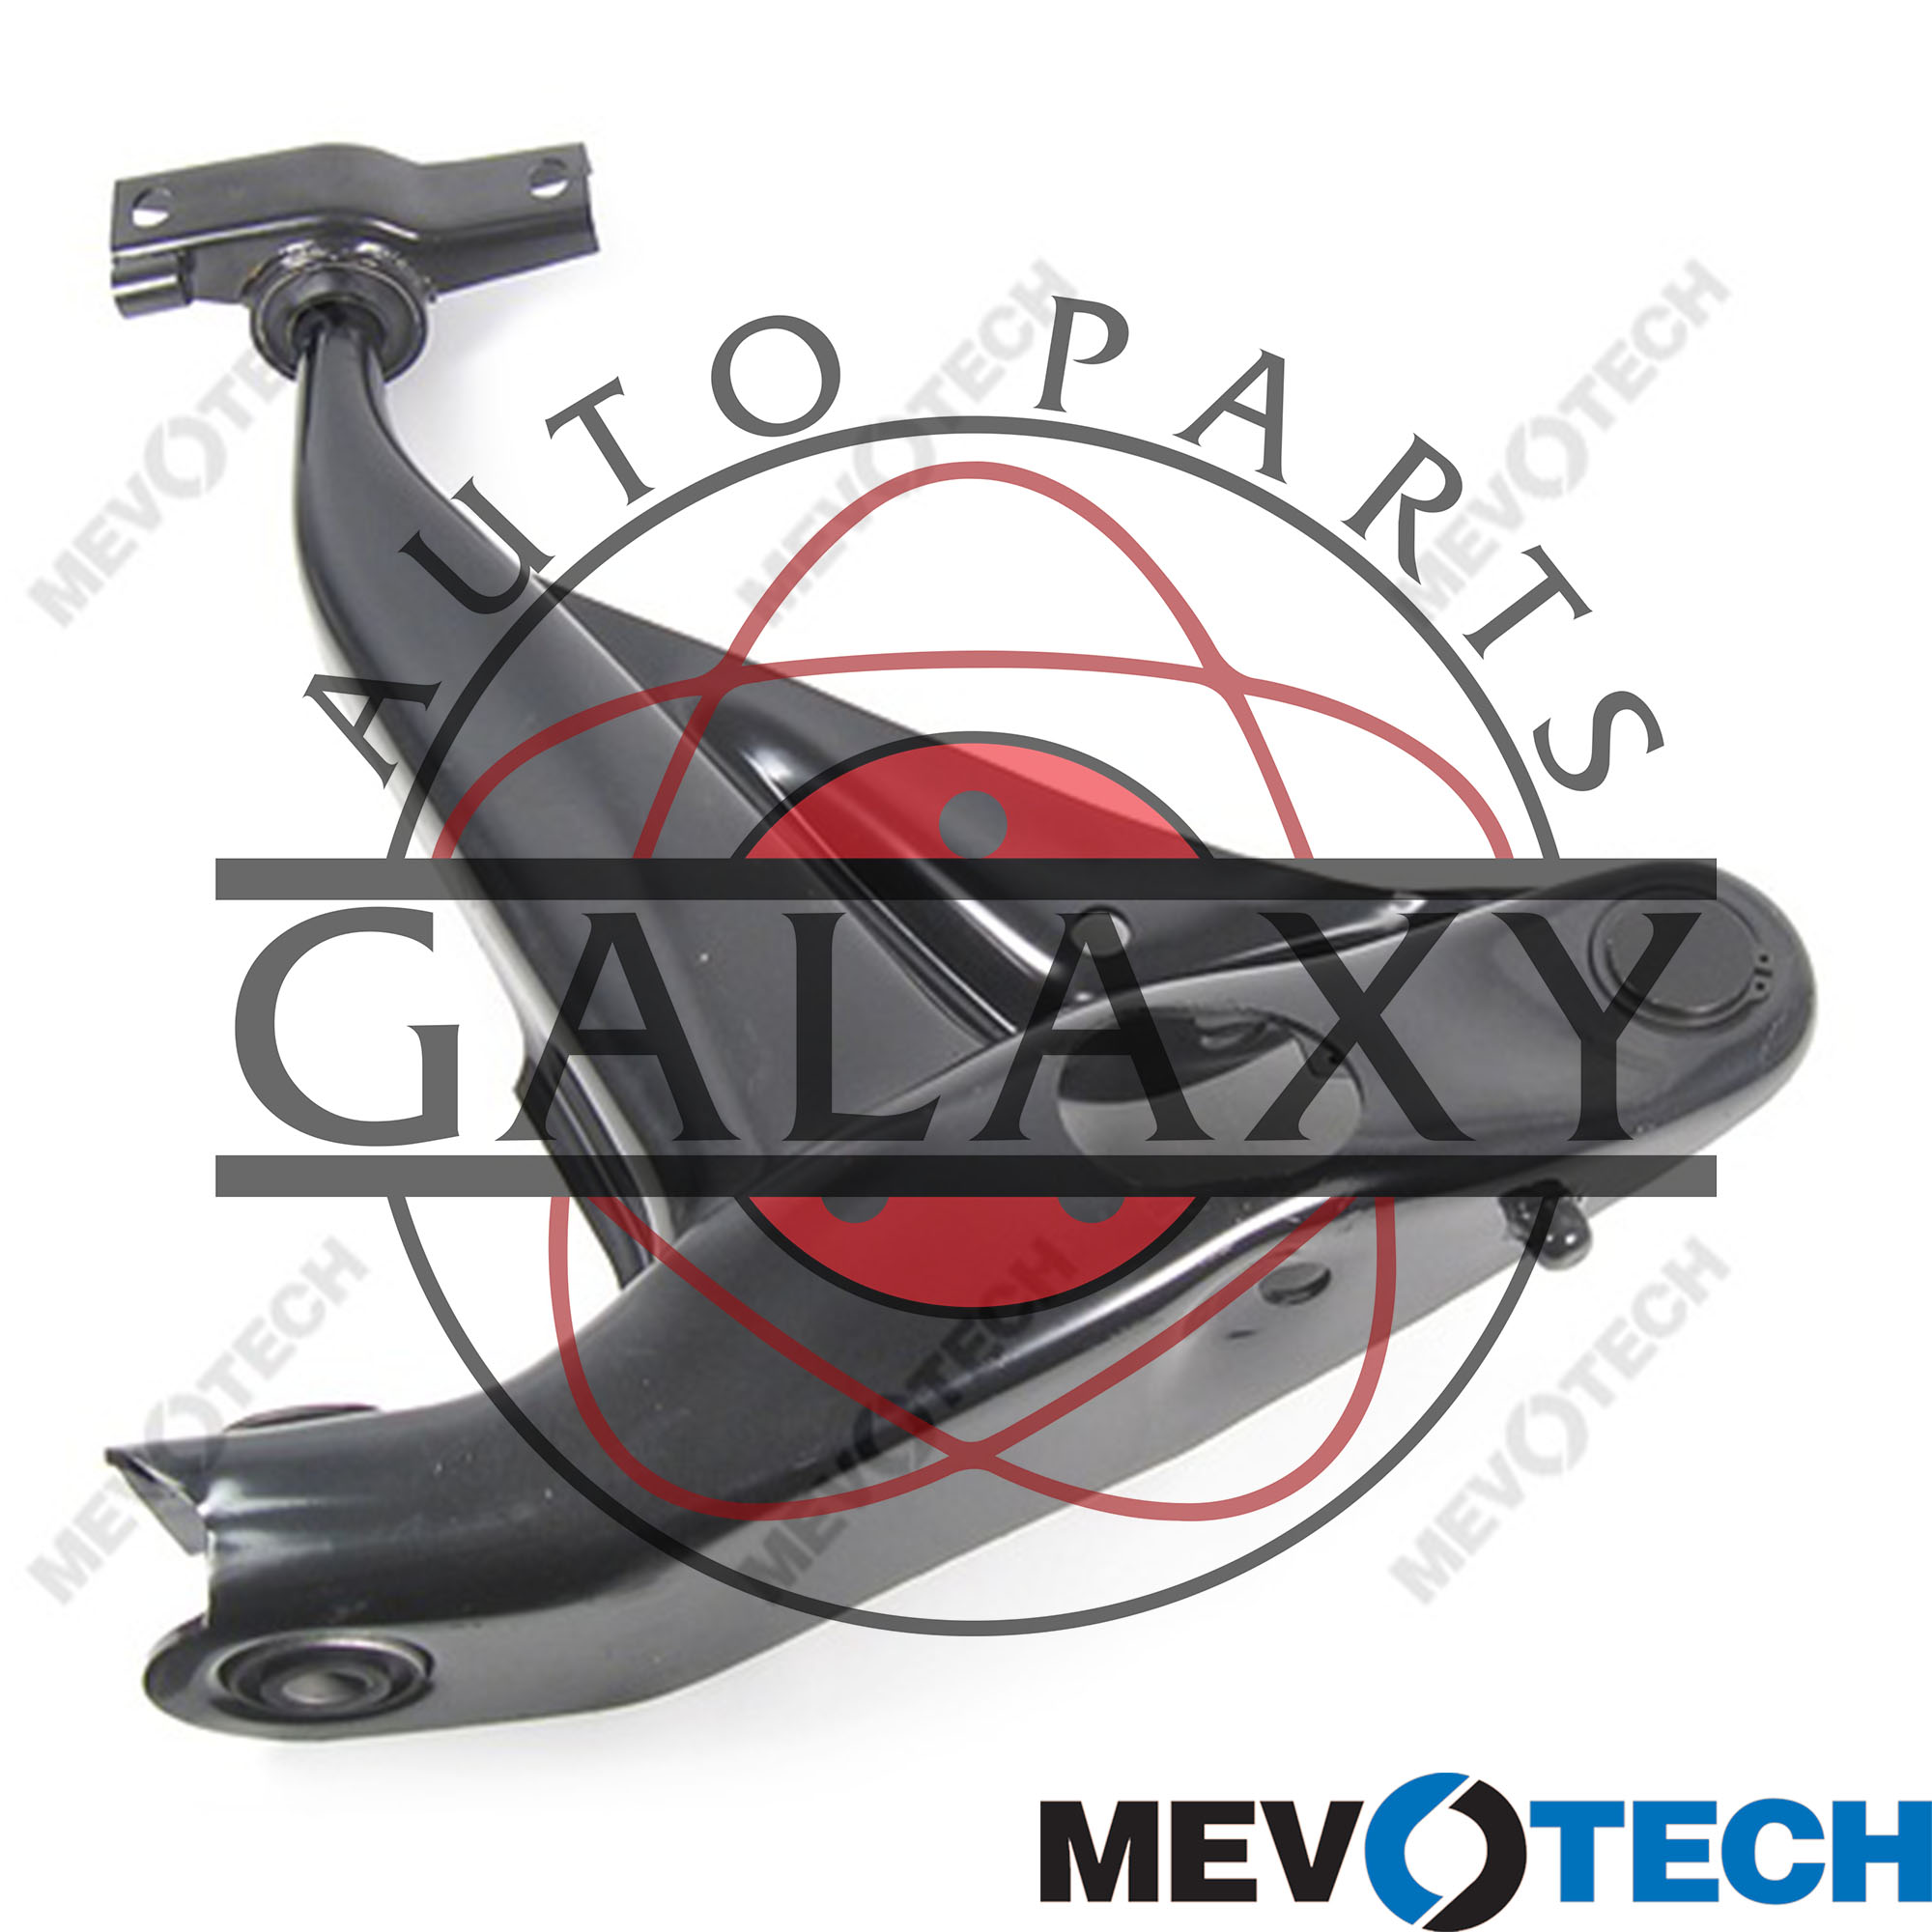 2005 Mercury Mountaineer Suspension: New Lower Control Arms Pair For Ford Explorer Mercury